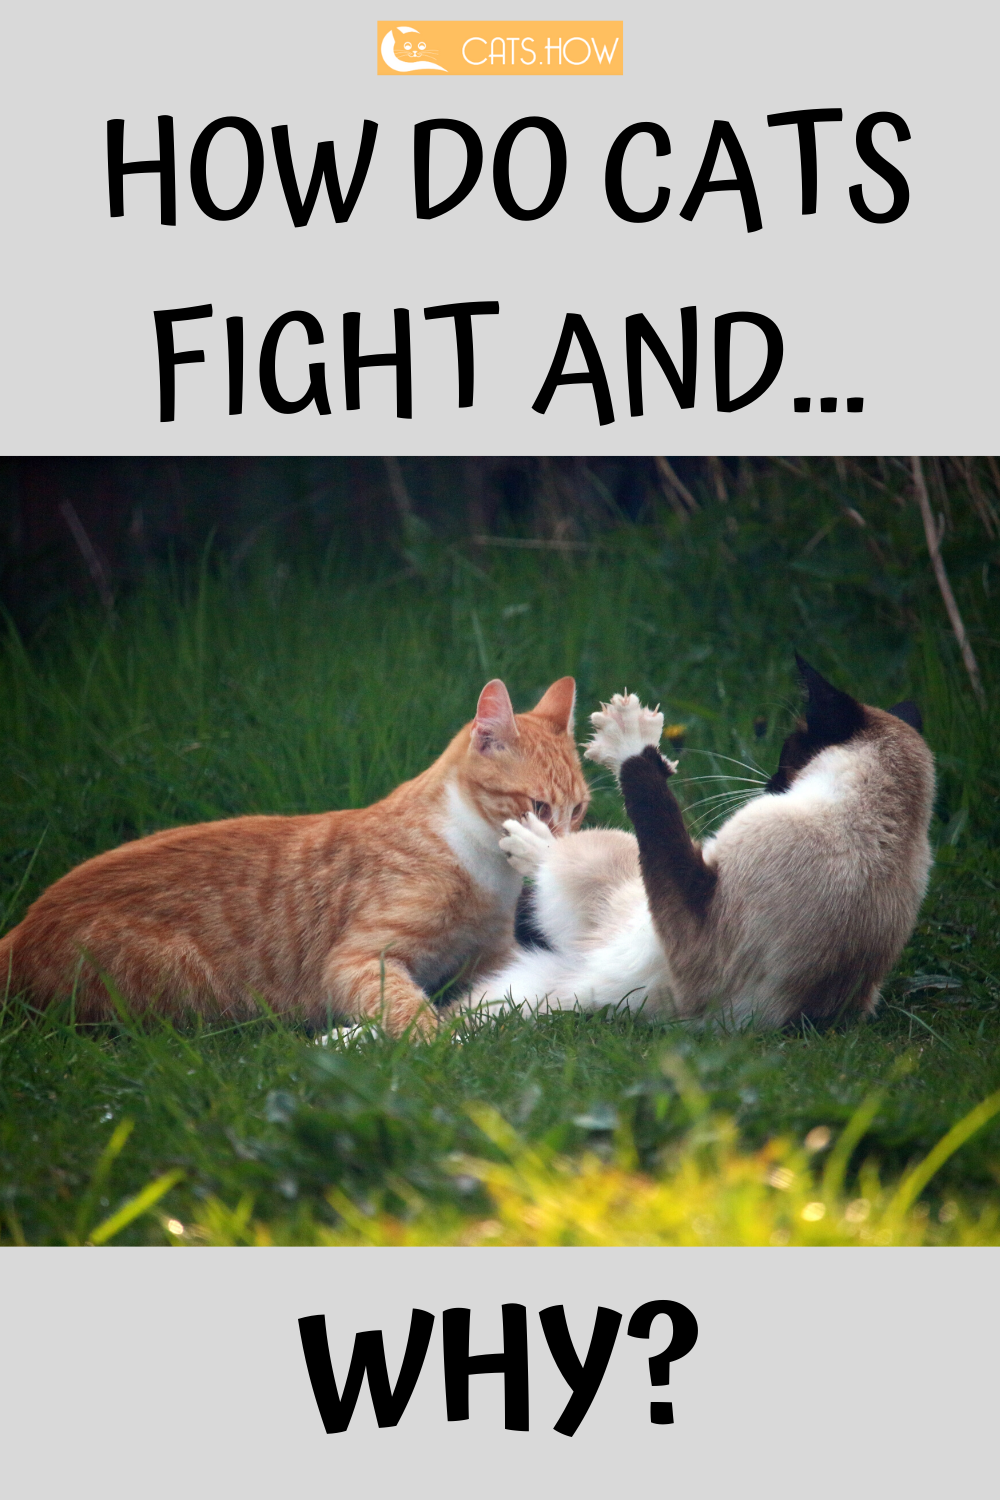 We're sure you've seen cats fighting each other. Or